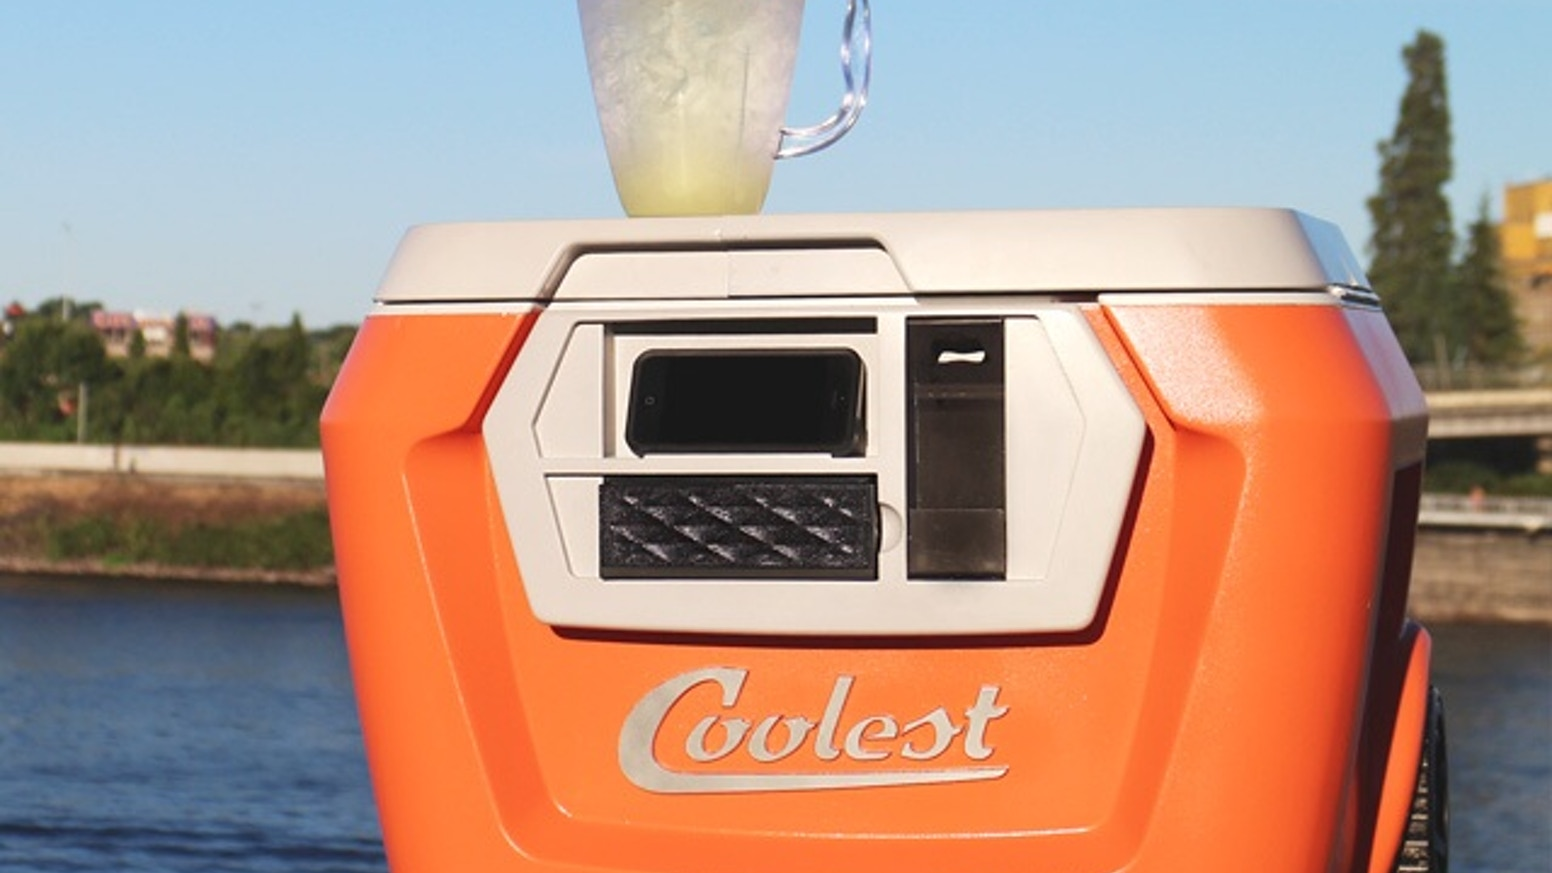 The COOLEST is a portable party disguised as a cooler, bringing blended drinks, music and fun to any outdoor occasion.